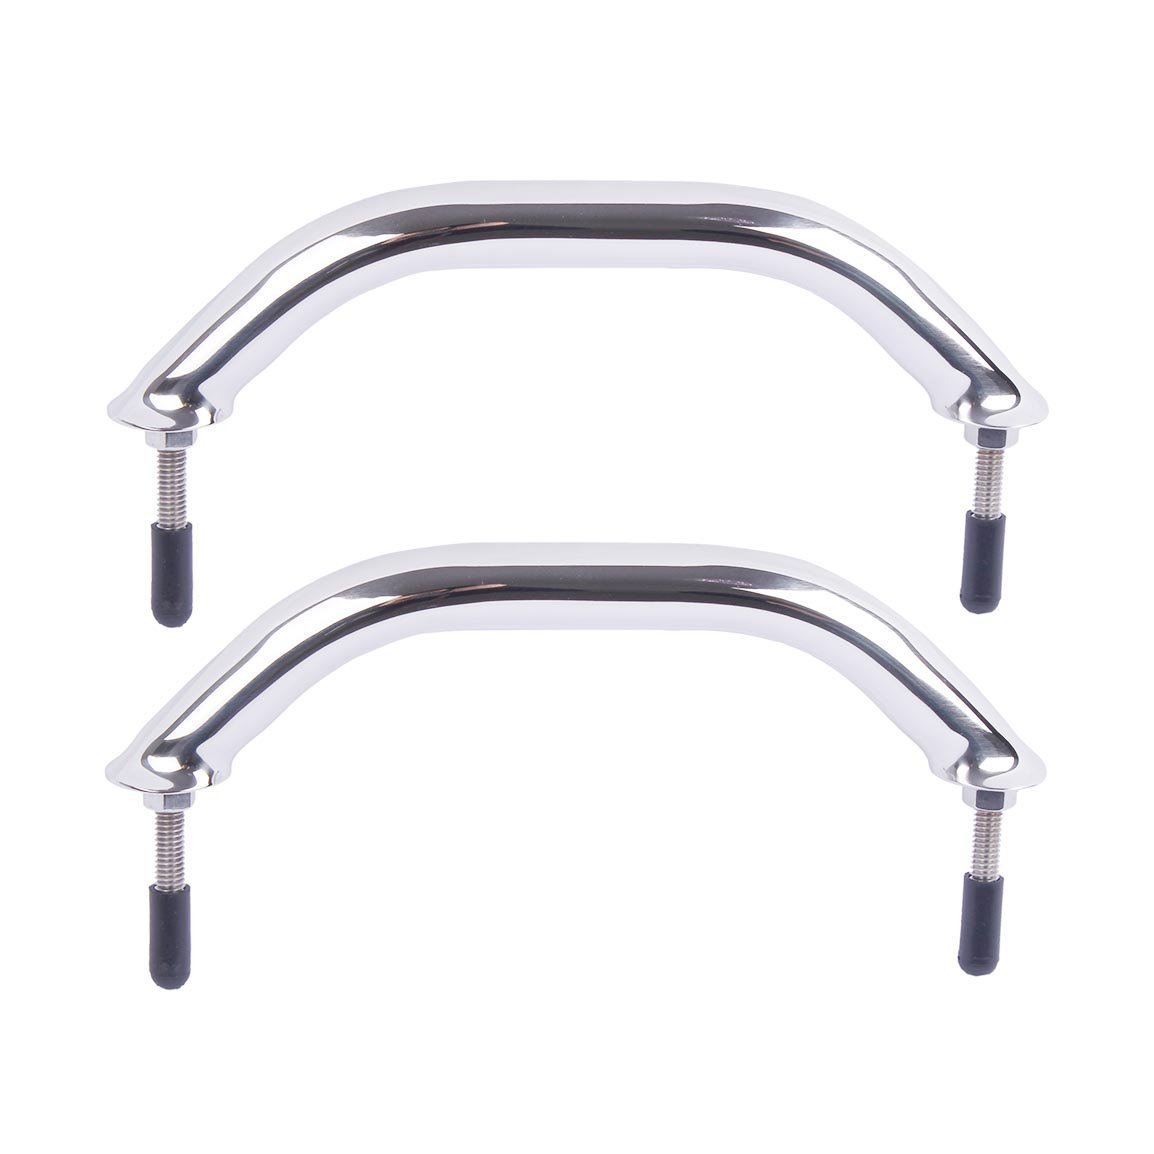 Polished Stainless Heavy Duty Oval Boat Marine Grab Handle Hand Rail with Flange & Stud - 8-5/8'' Long